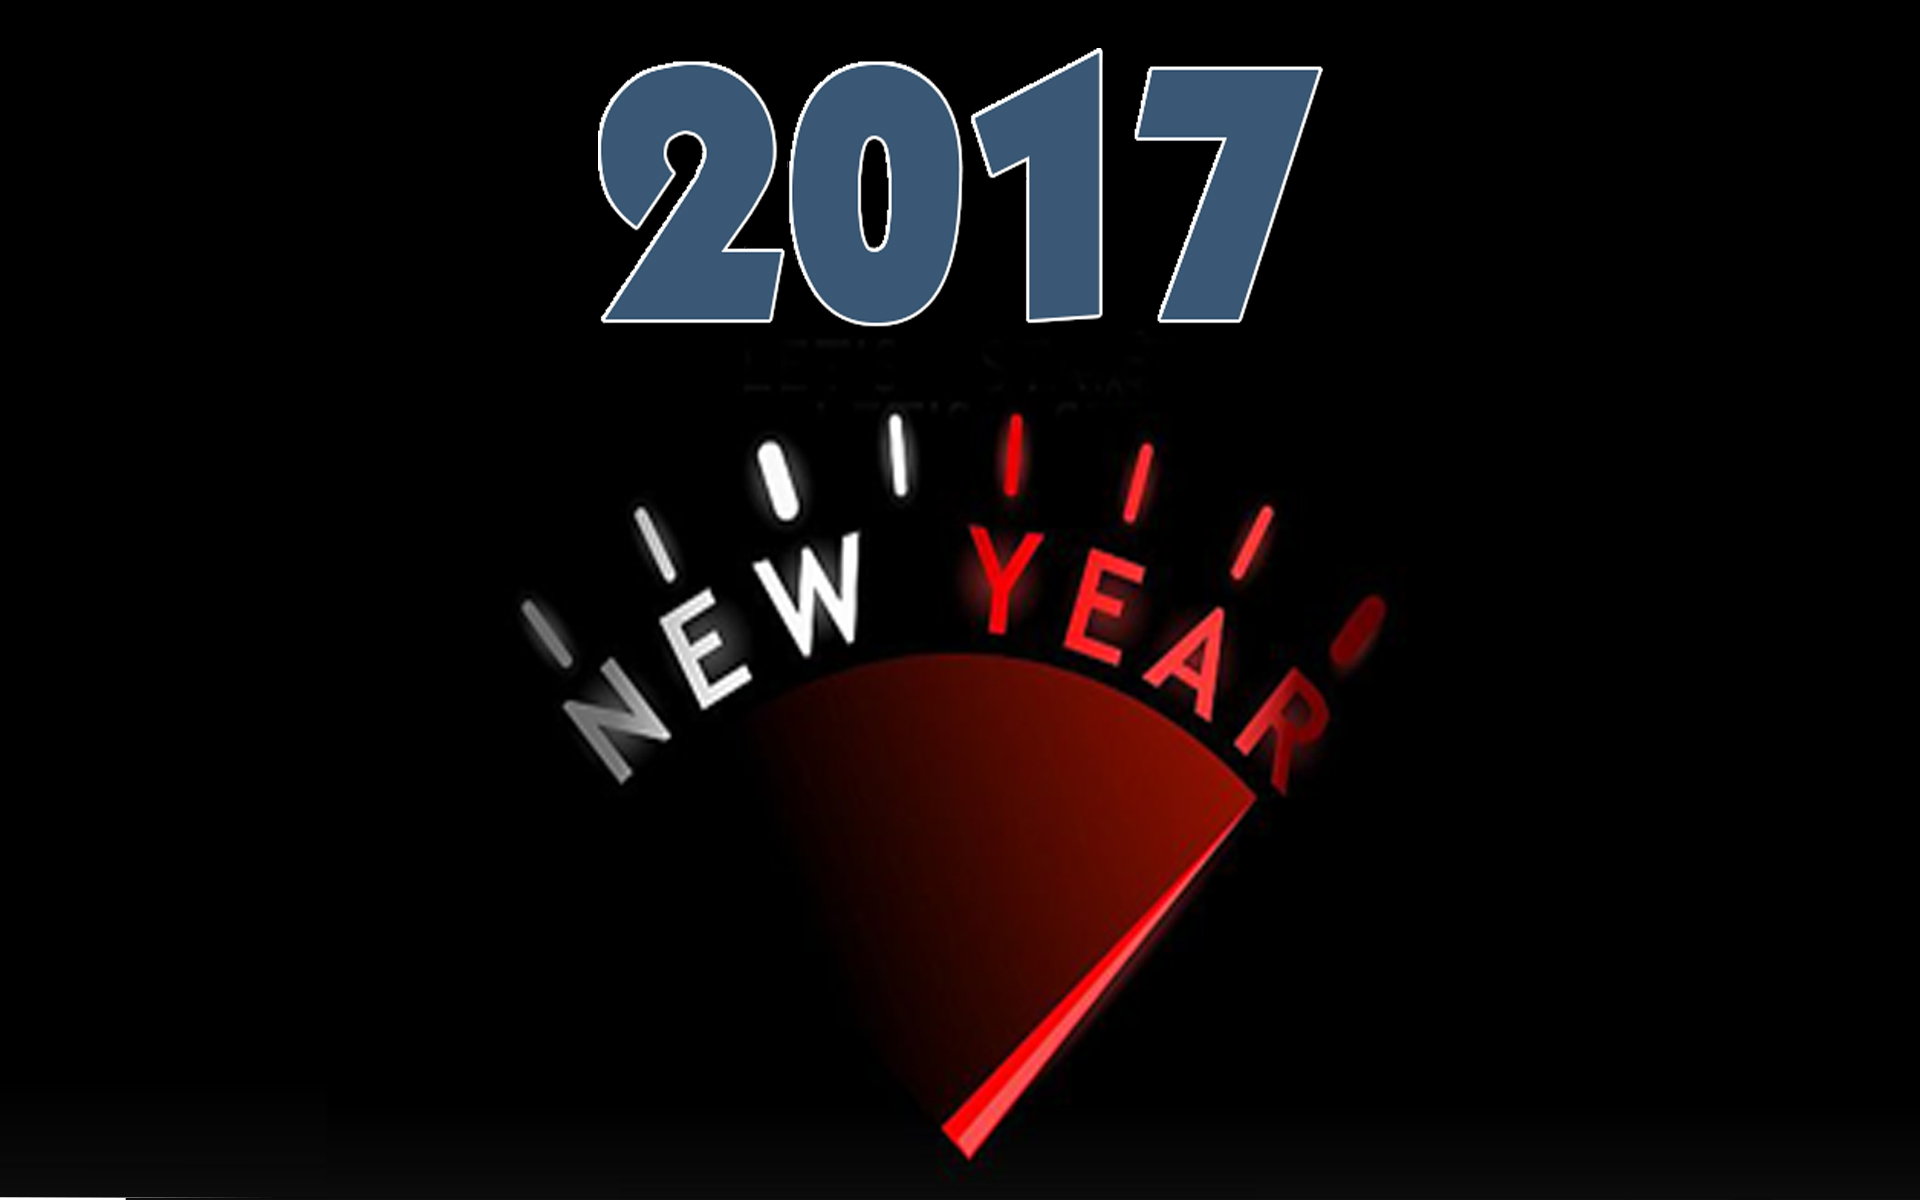 Happy New Year Images for Whatsapp DP, Profile Wallpapers 2017 – Download